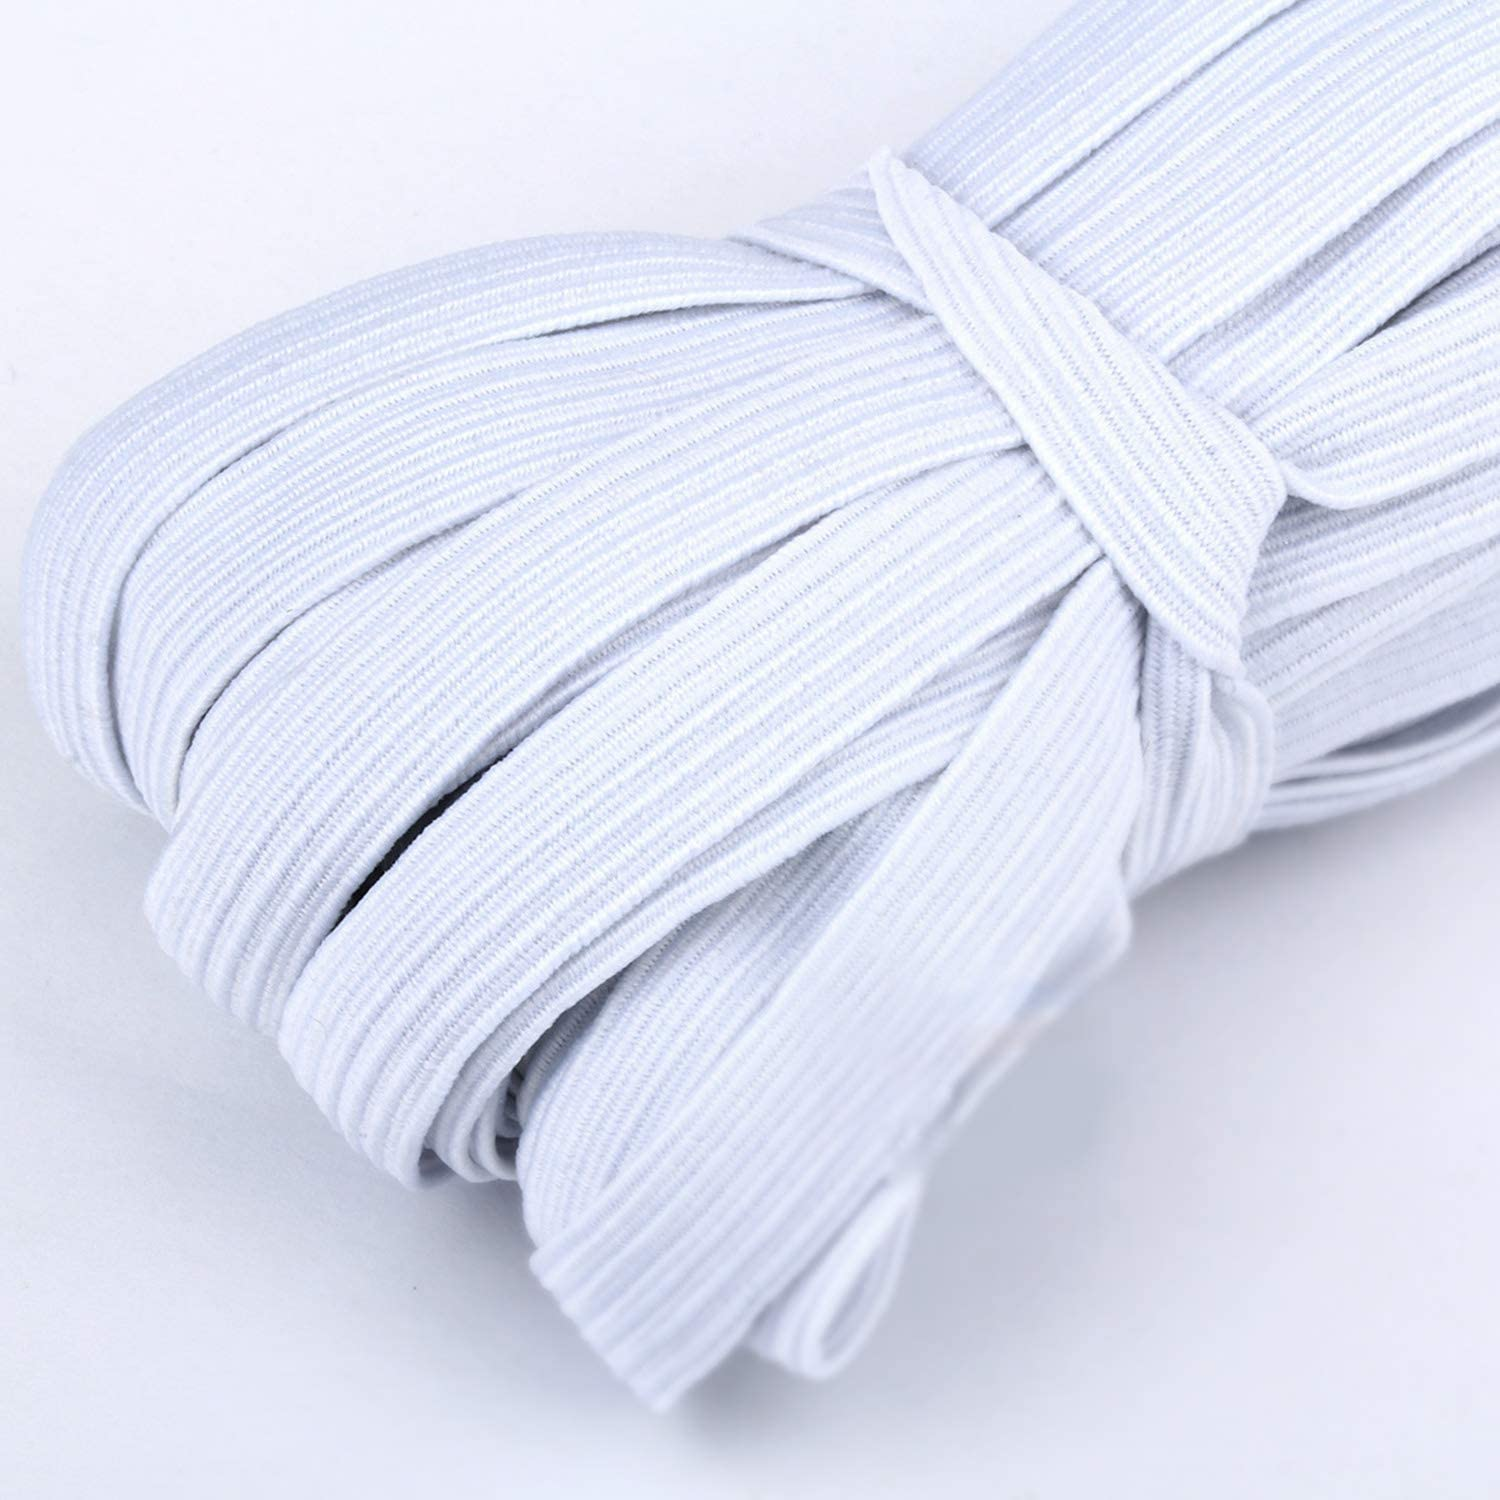 100Yards Length 1//4 Inch Width Braided Elastic Band White Elastic String Cord Heavy Stretch High Elasticity Knit Elastic Band for Sewing Craft DIY White